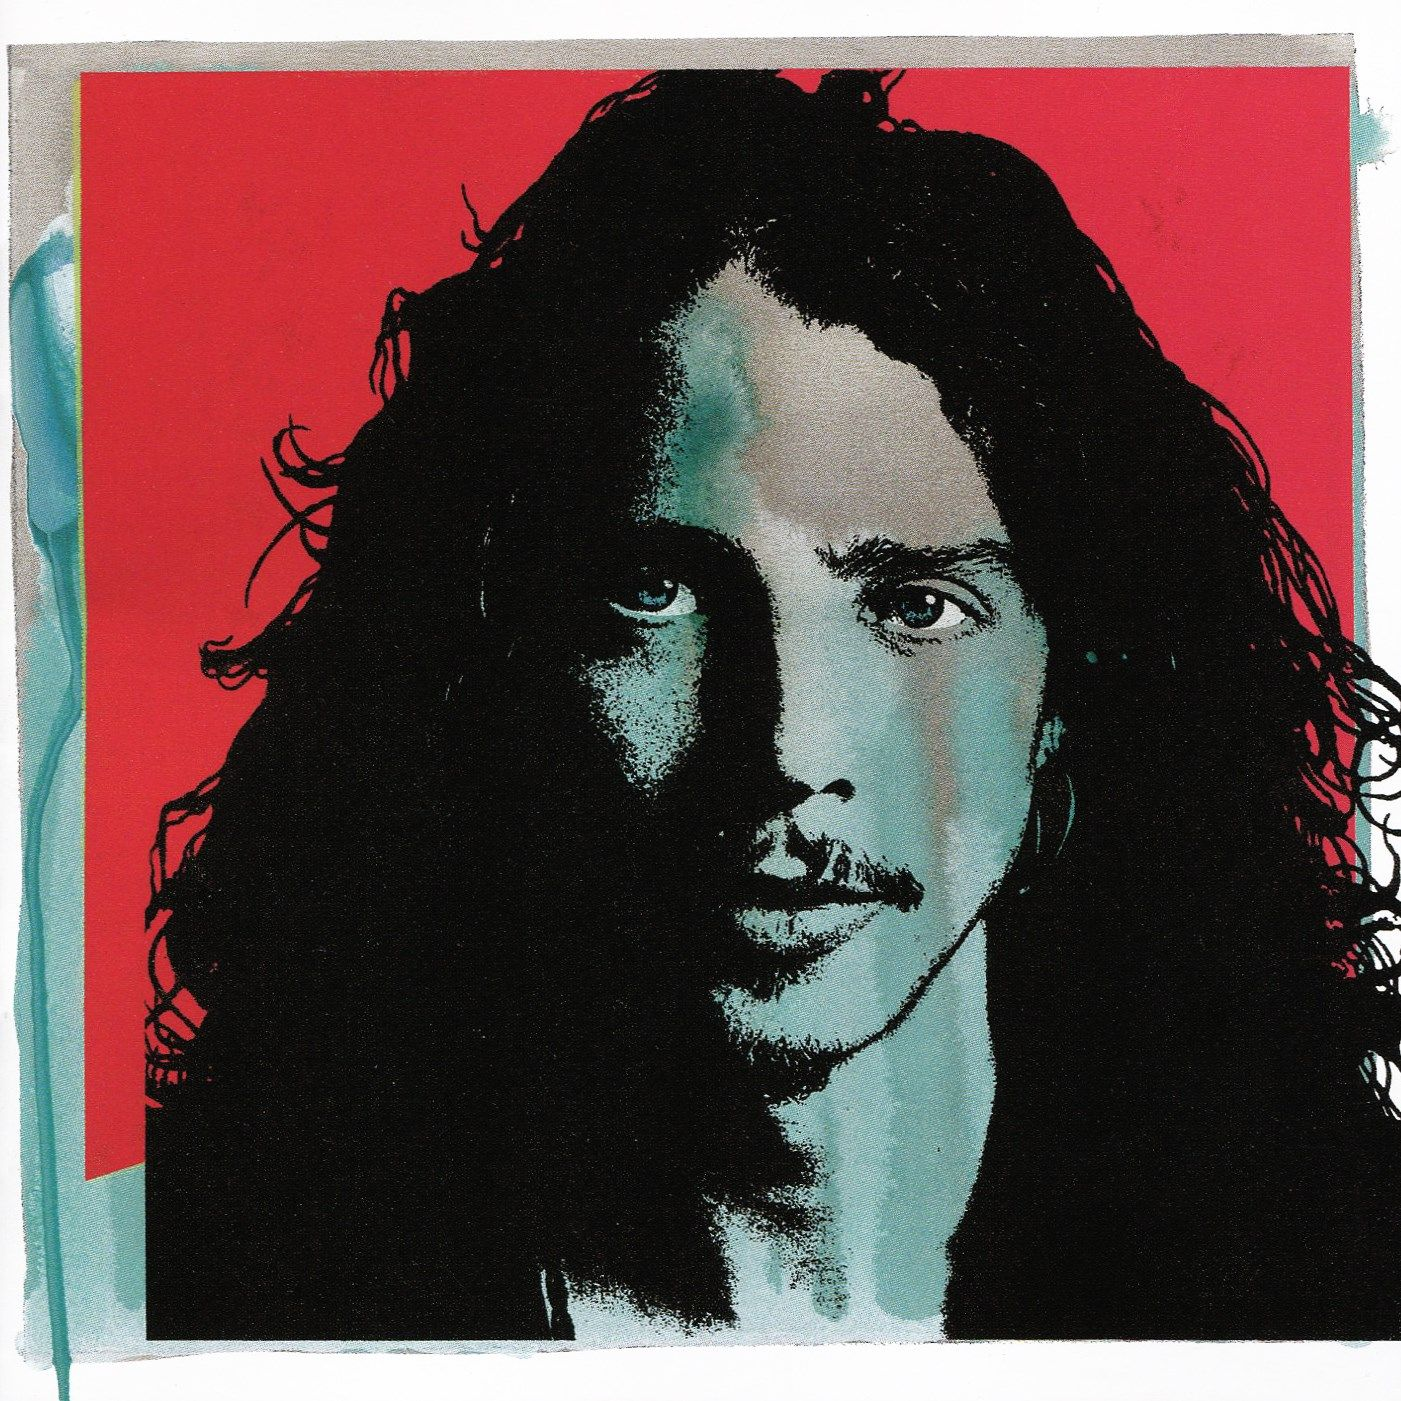 Chris Cornell - Chris Cornell album cover